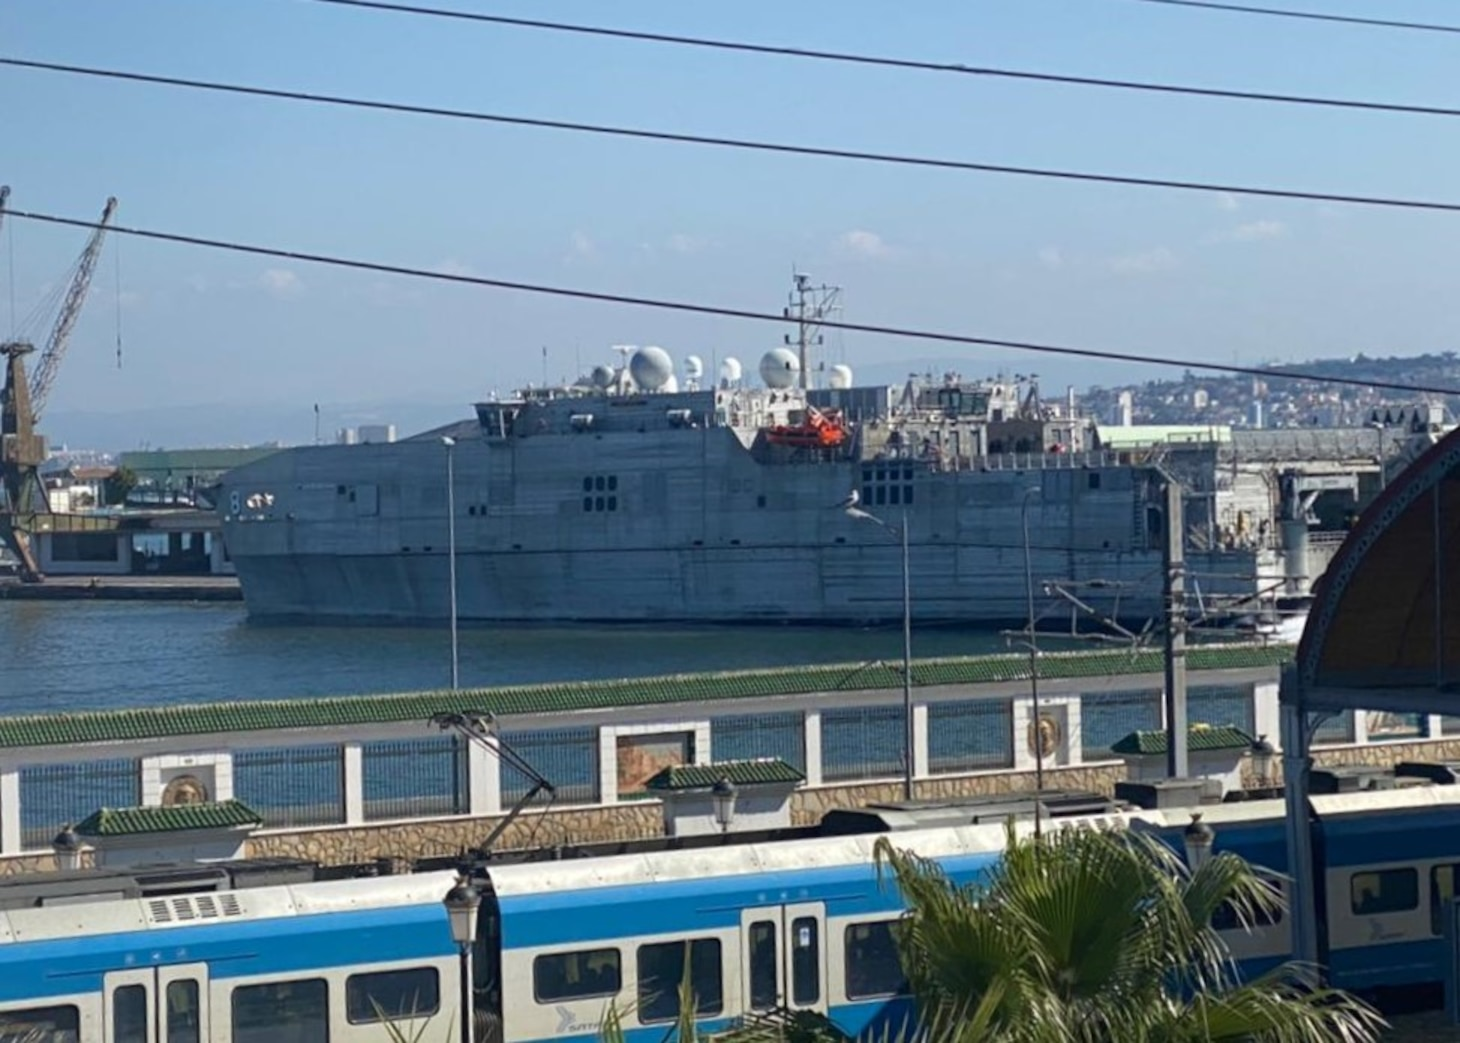 210323-N-NO901-0002 ALGIERS, Algeria (Mar. 23, 2021) The Military Sealift Command Spearhead-class expeditionary fast transport USNS Yuma (T-EPF 8) arrived in Algiers, Algeria, for a port visit on March 23, 2021. Yuma is operating in U.S. Sixth Fleet to conduct interoperability training and building strategic partnerships with their African partners. (Photo courtesy U.S. Embassy Algiers)